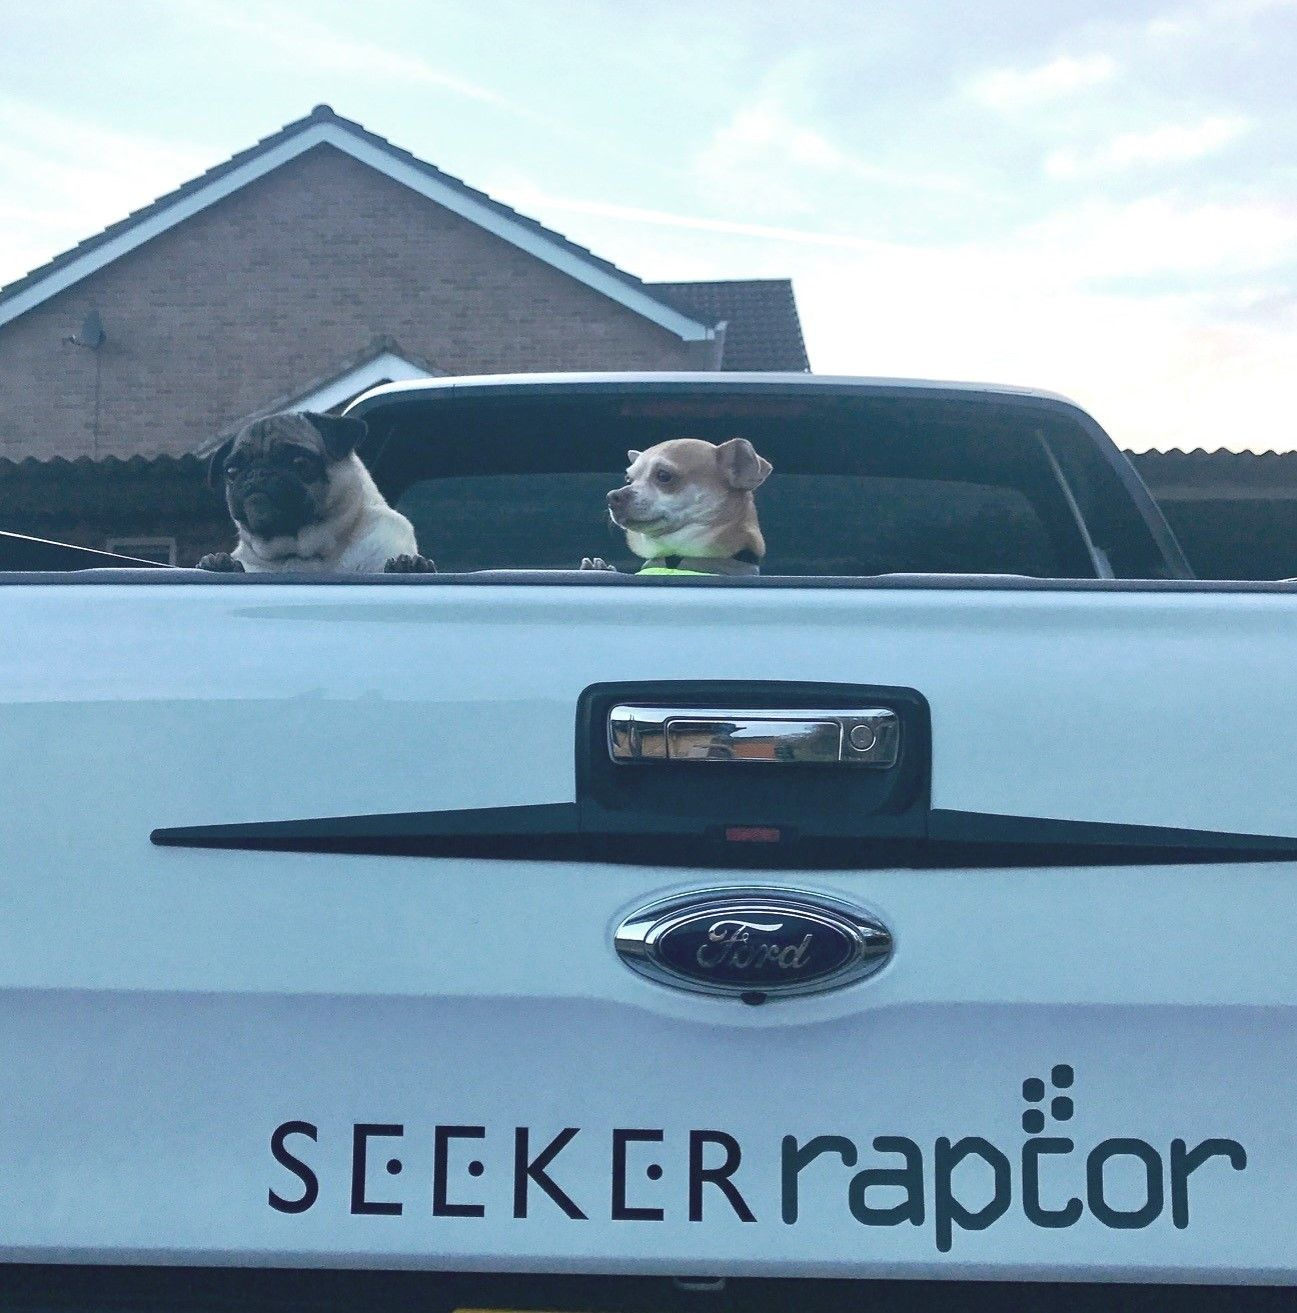 Toby the pug and Perry the chihuahua enjoy the Ford Ranger SEEKER Raptor too!